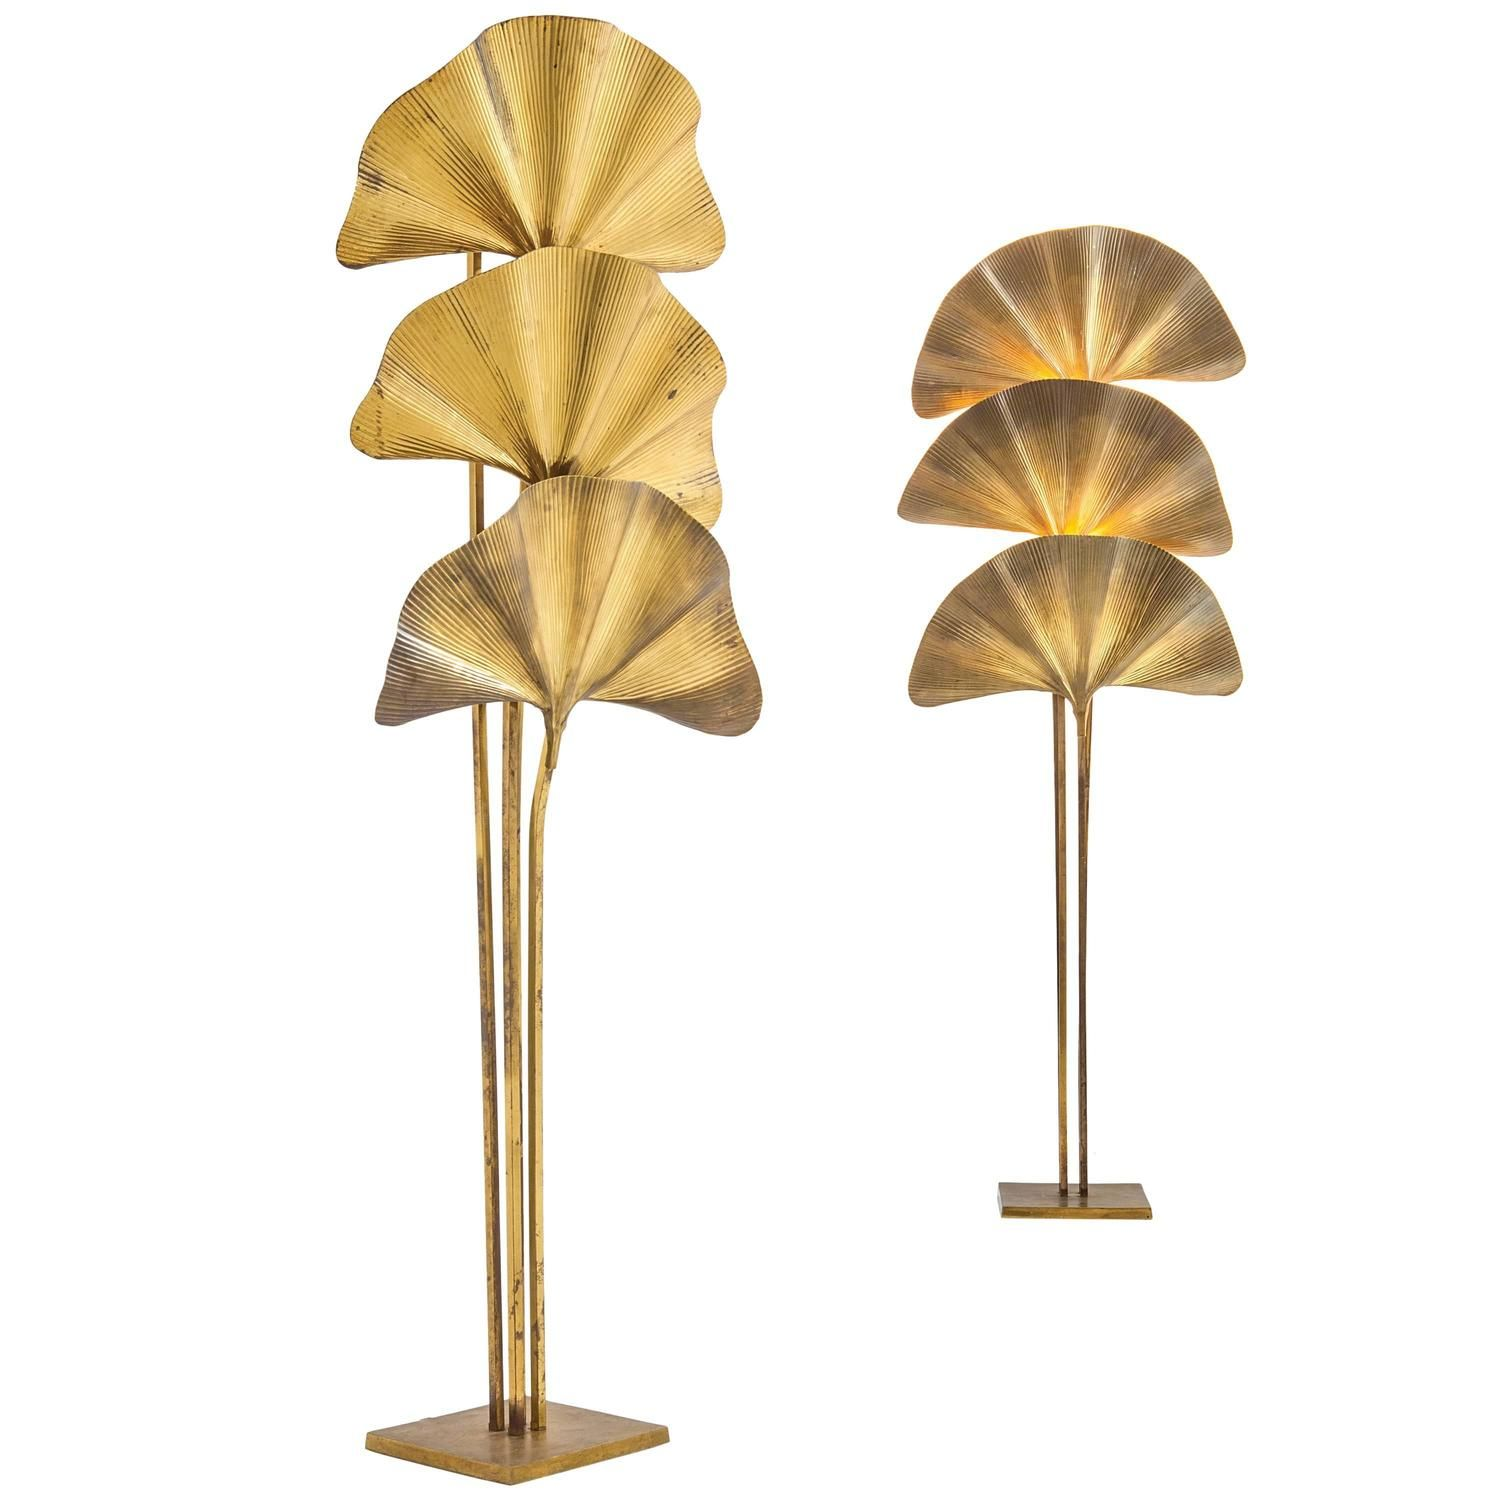 Tommaso Barbi, Pair of Golden and Hammered Brass Lamps, circa 1970, Italy | From a unique collection of antique and modern floor lamps at https://www.1stdibs.com/furniture/lighting/floor-lamps/